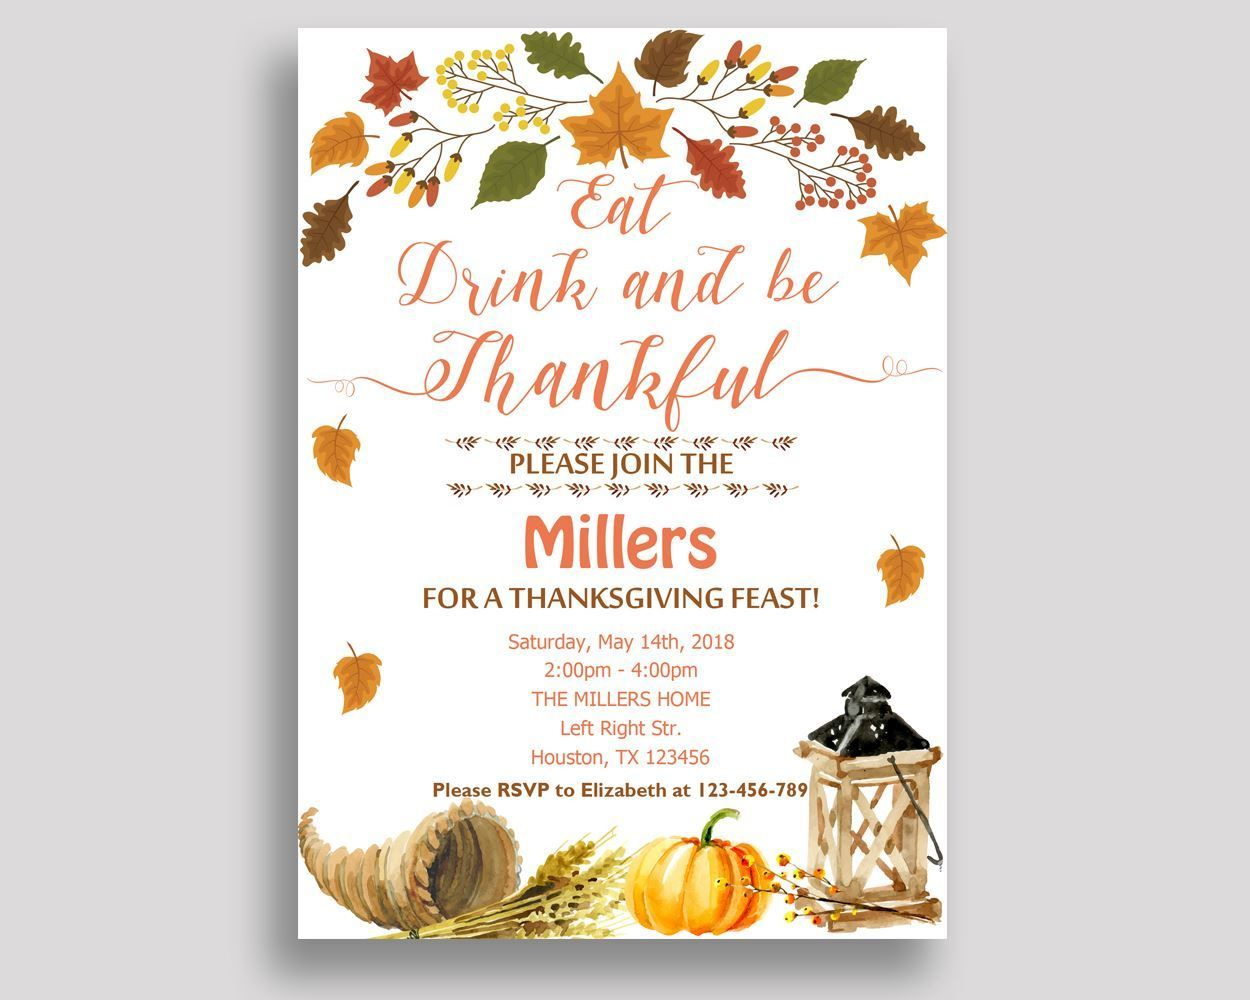 Thanksgiving feast invitation thanksgiving party invitation thanksgiving feast invitation thanksgiving party invitation thanksgiving dinner party thanksgiving day invitation thanksgiving turkey xryol stopboris Image collections